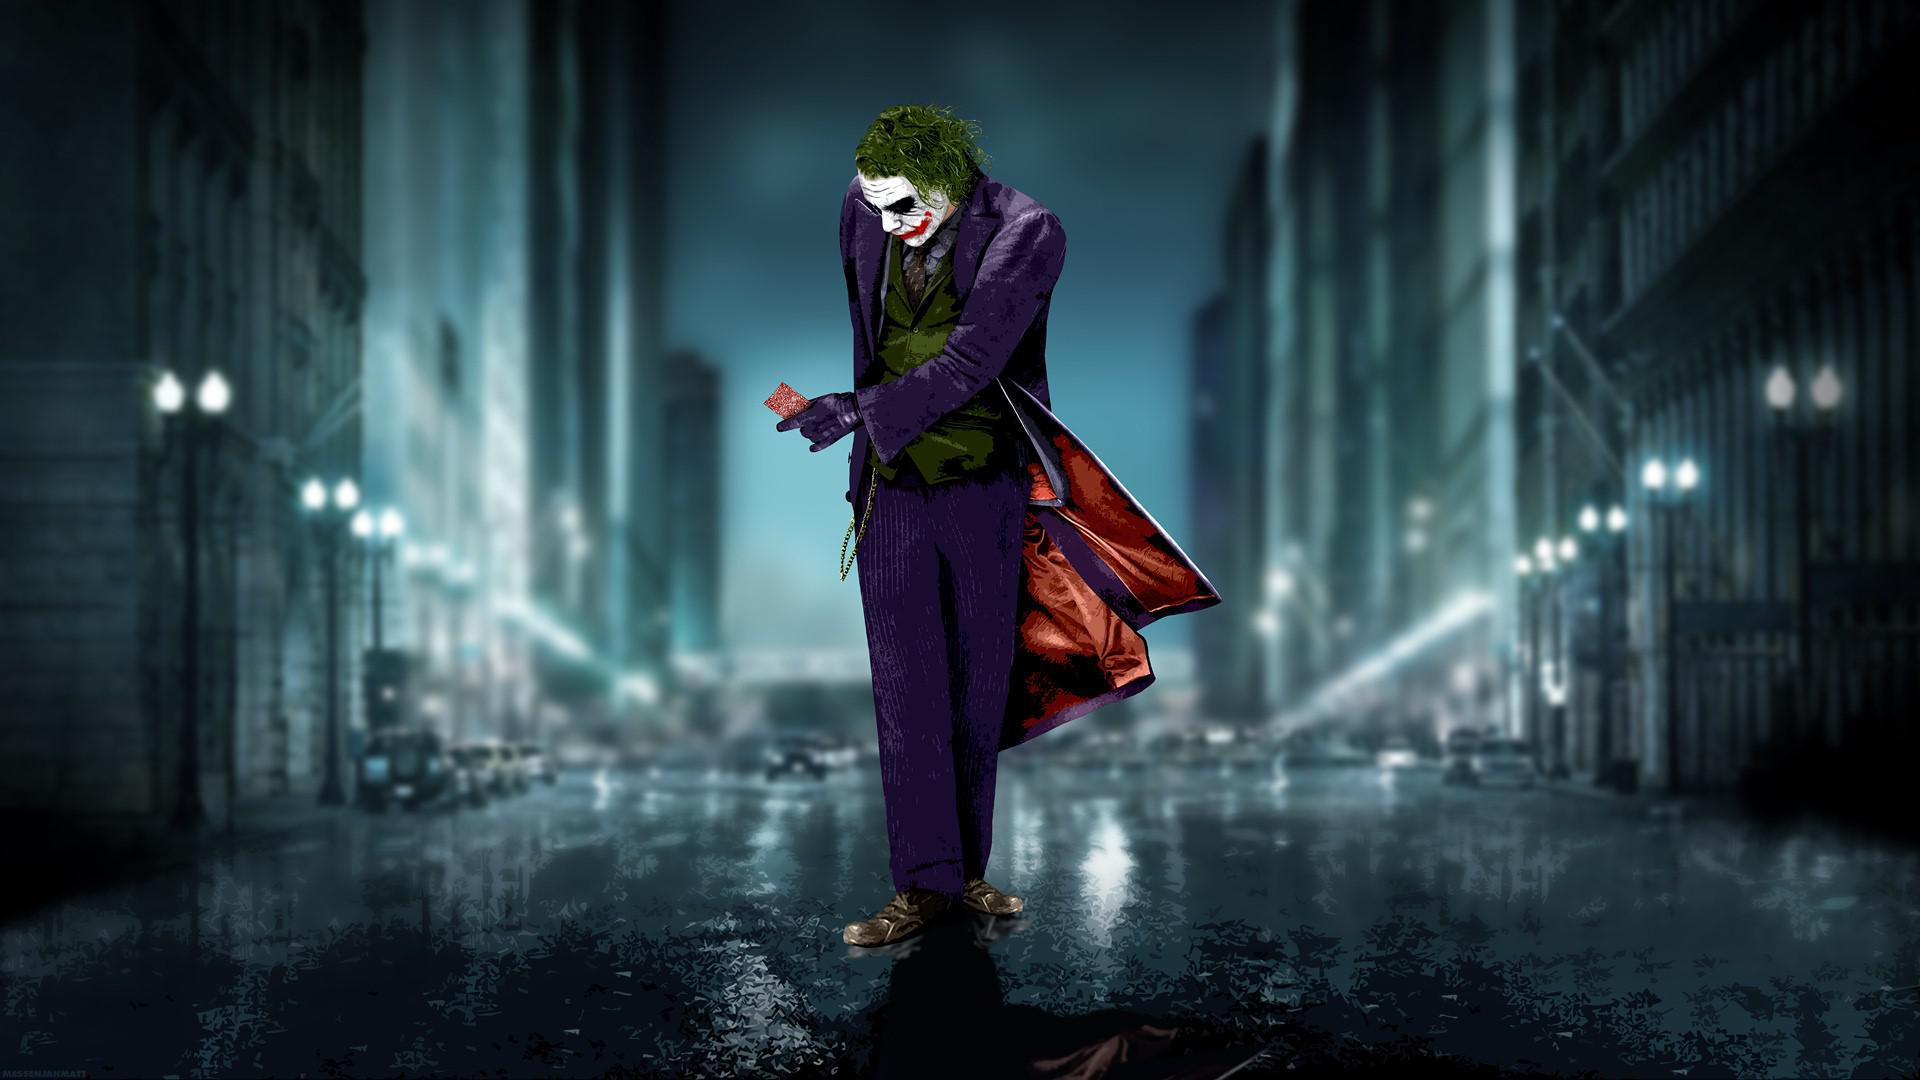 Wallpapers Hd Joker 蝙蝠侠小丑走在路上高清桌面壁纸:宽屏:高清晰度:全屏